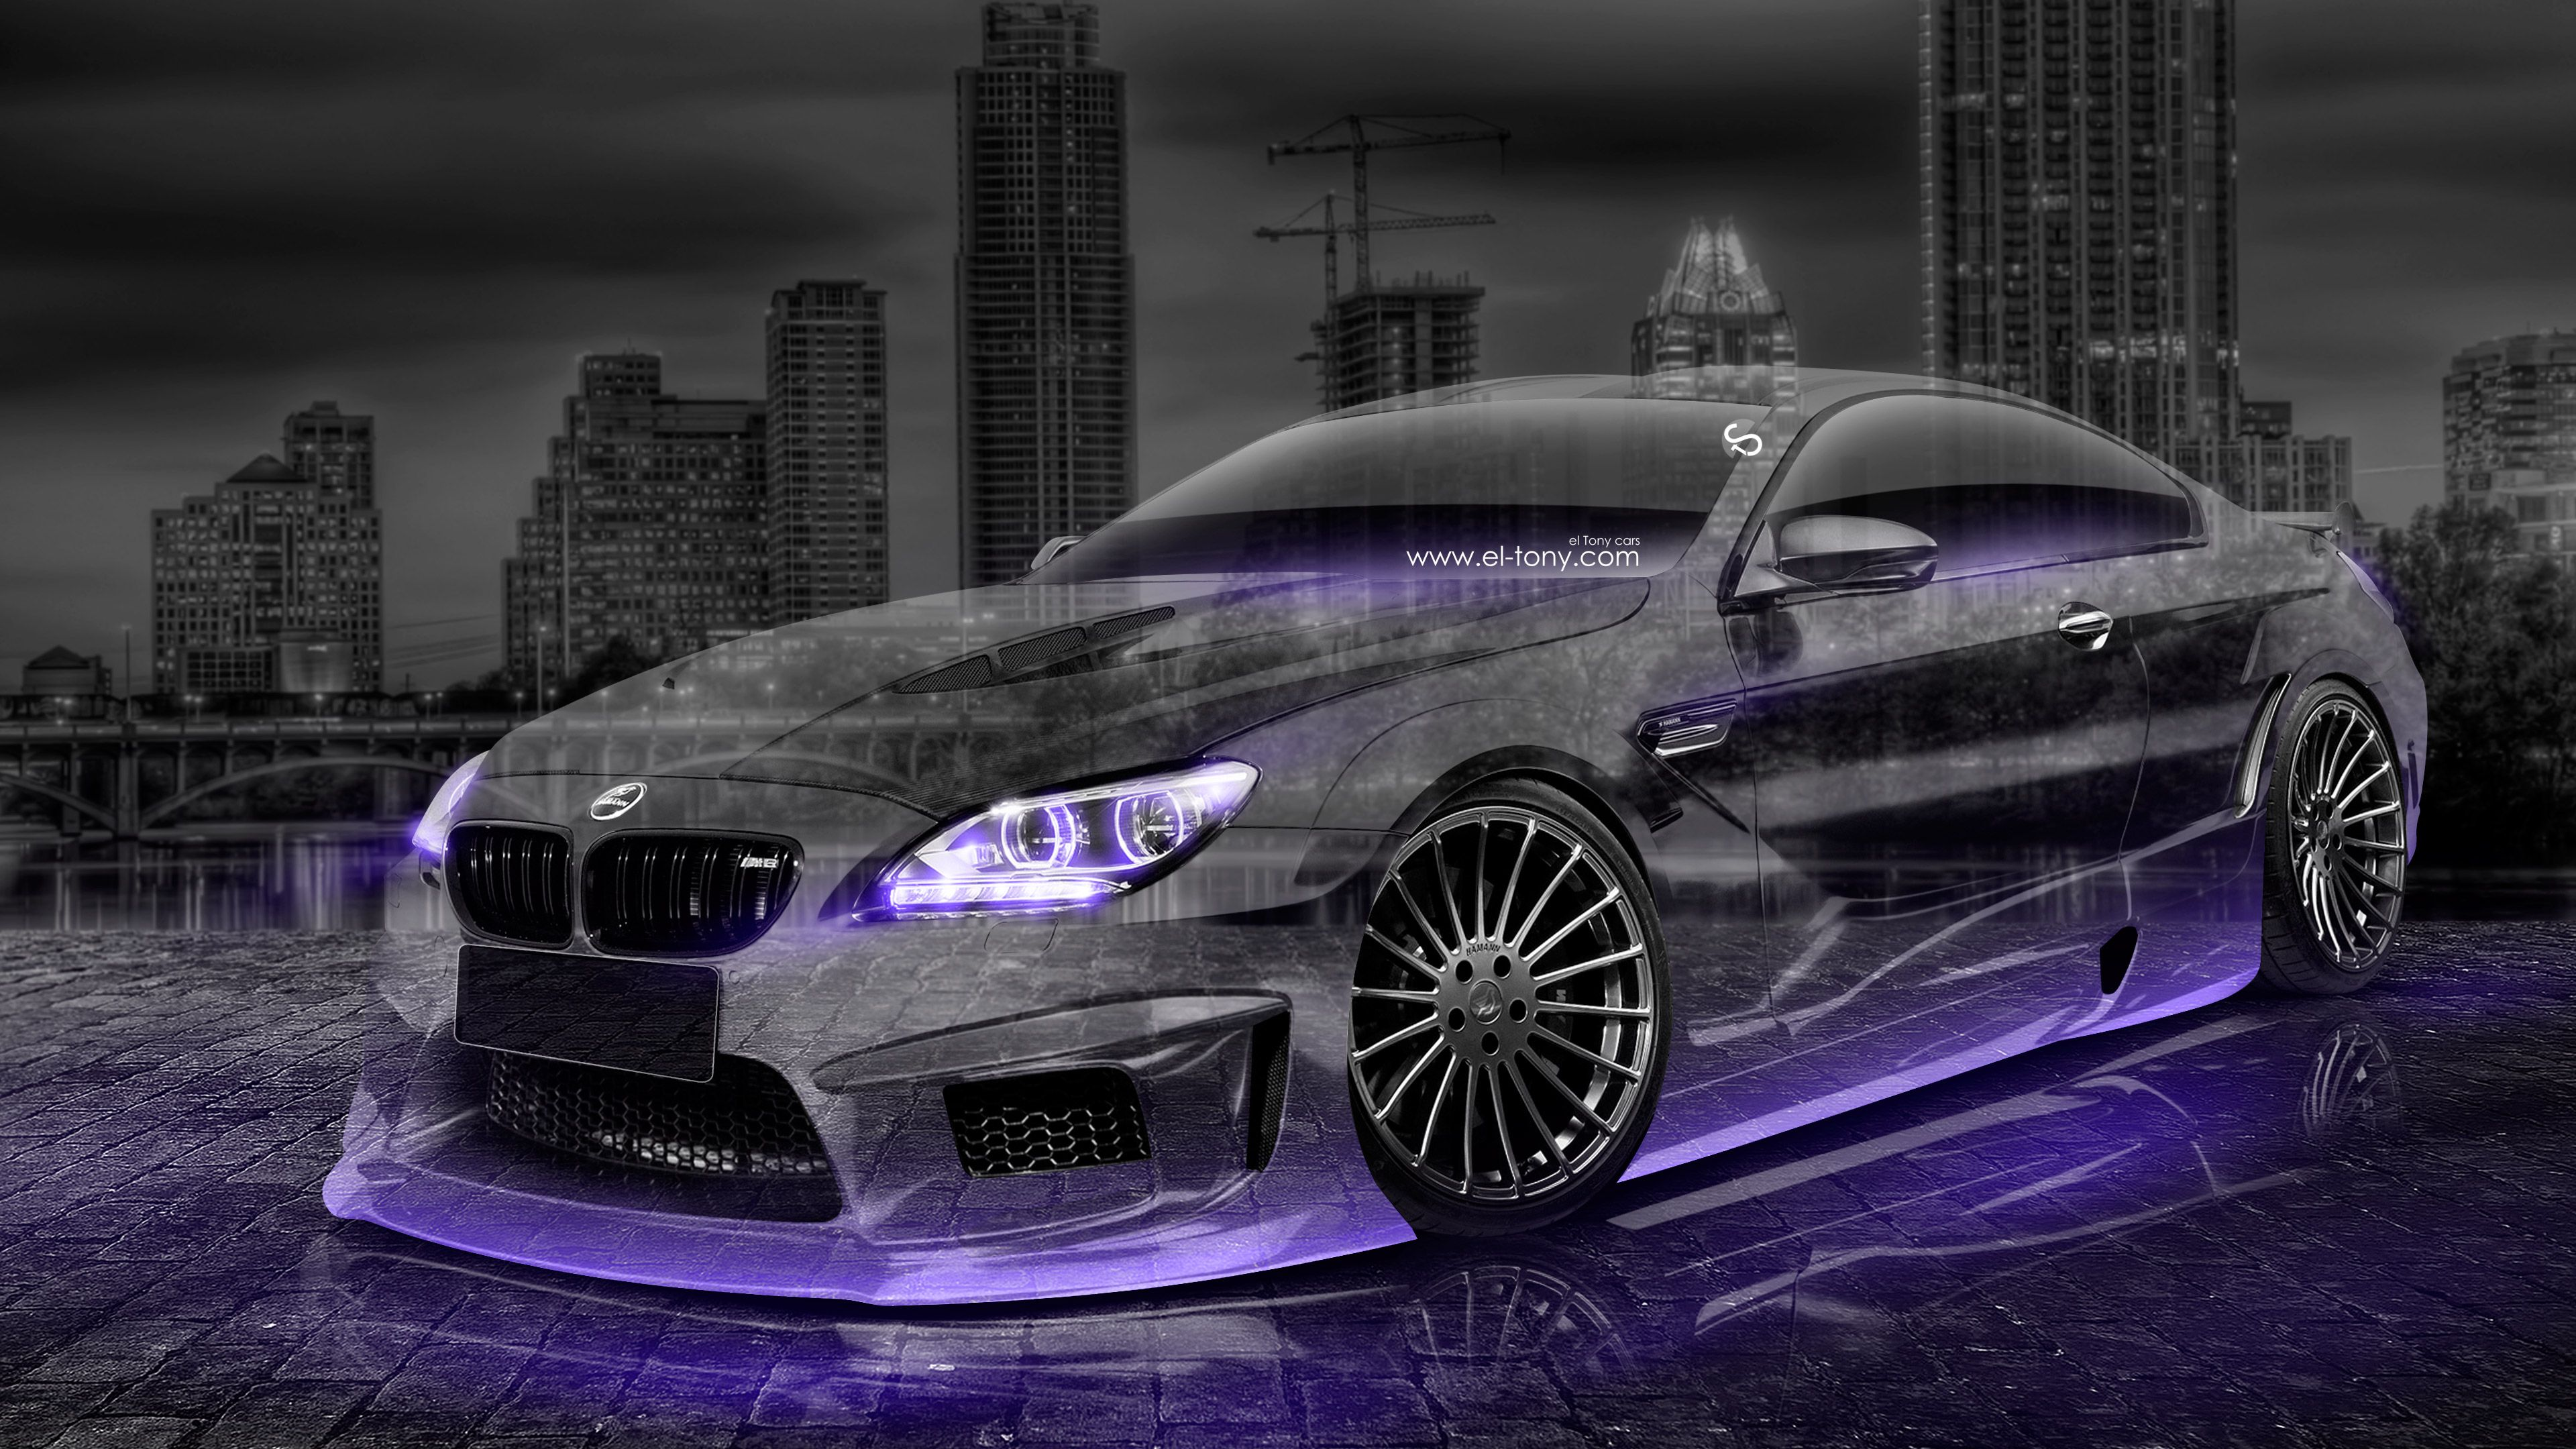 Ordinaire BMW M6 Hamann Tuning 3D Crystal City Car